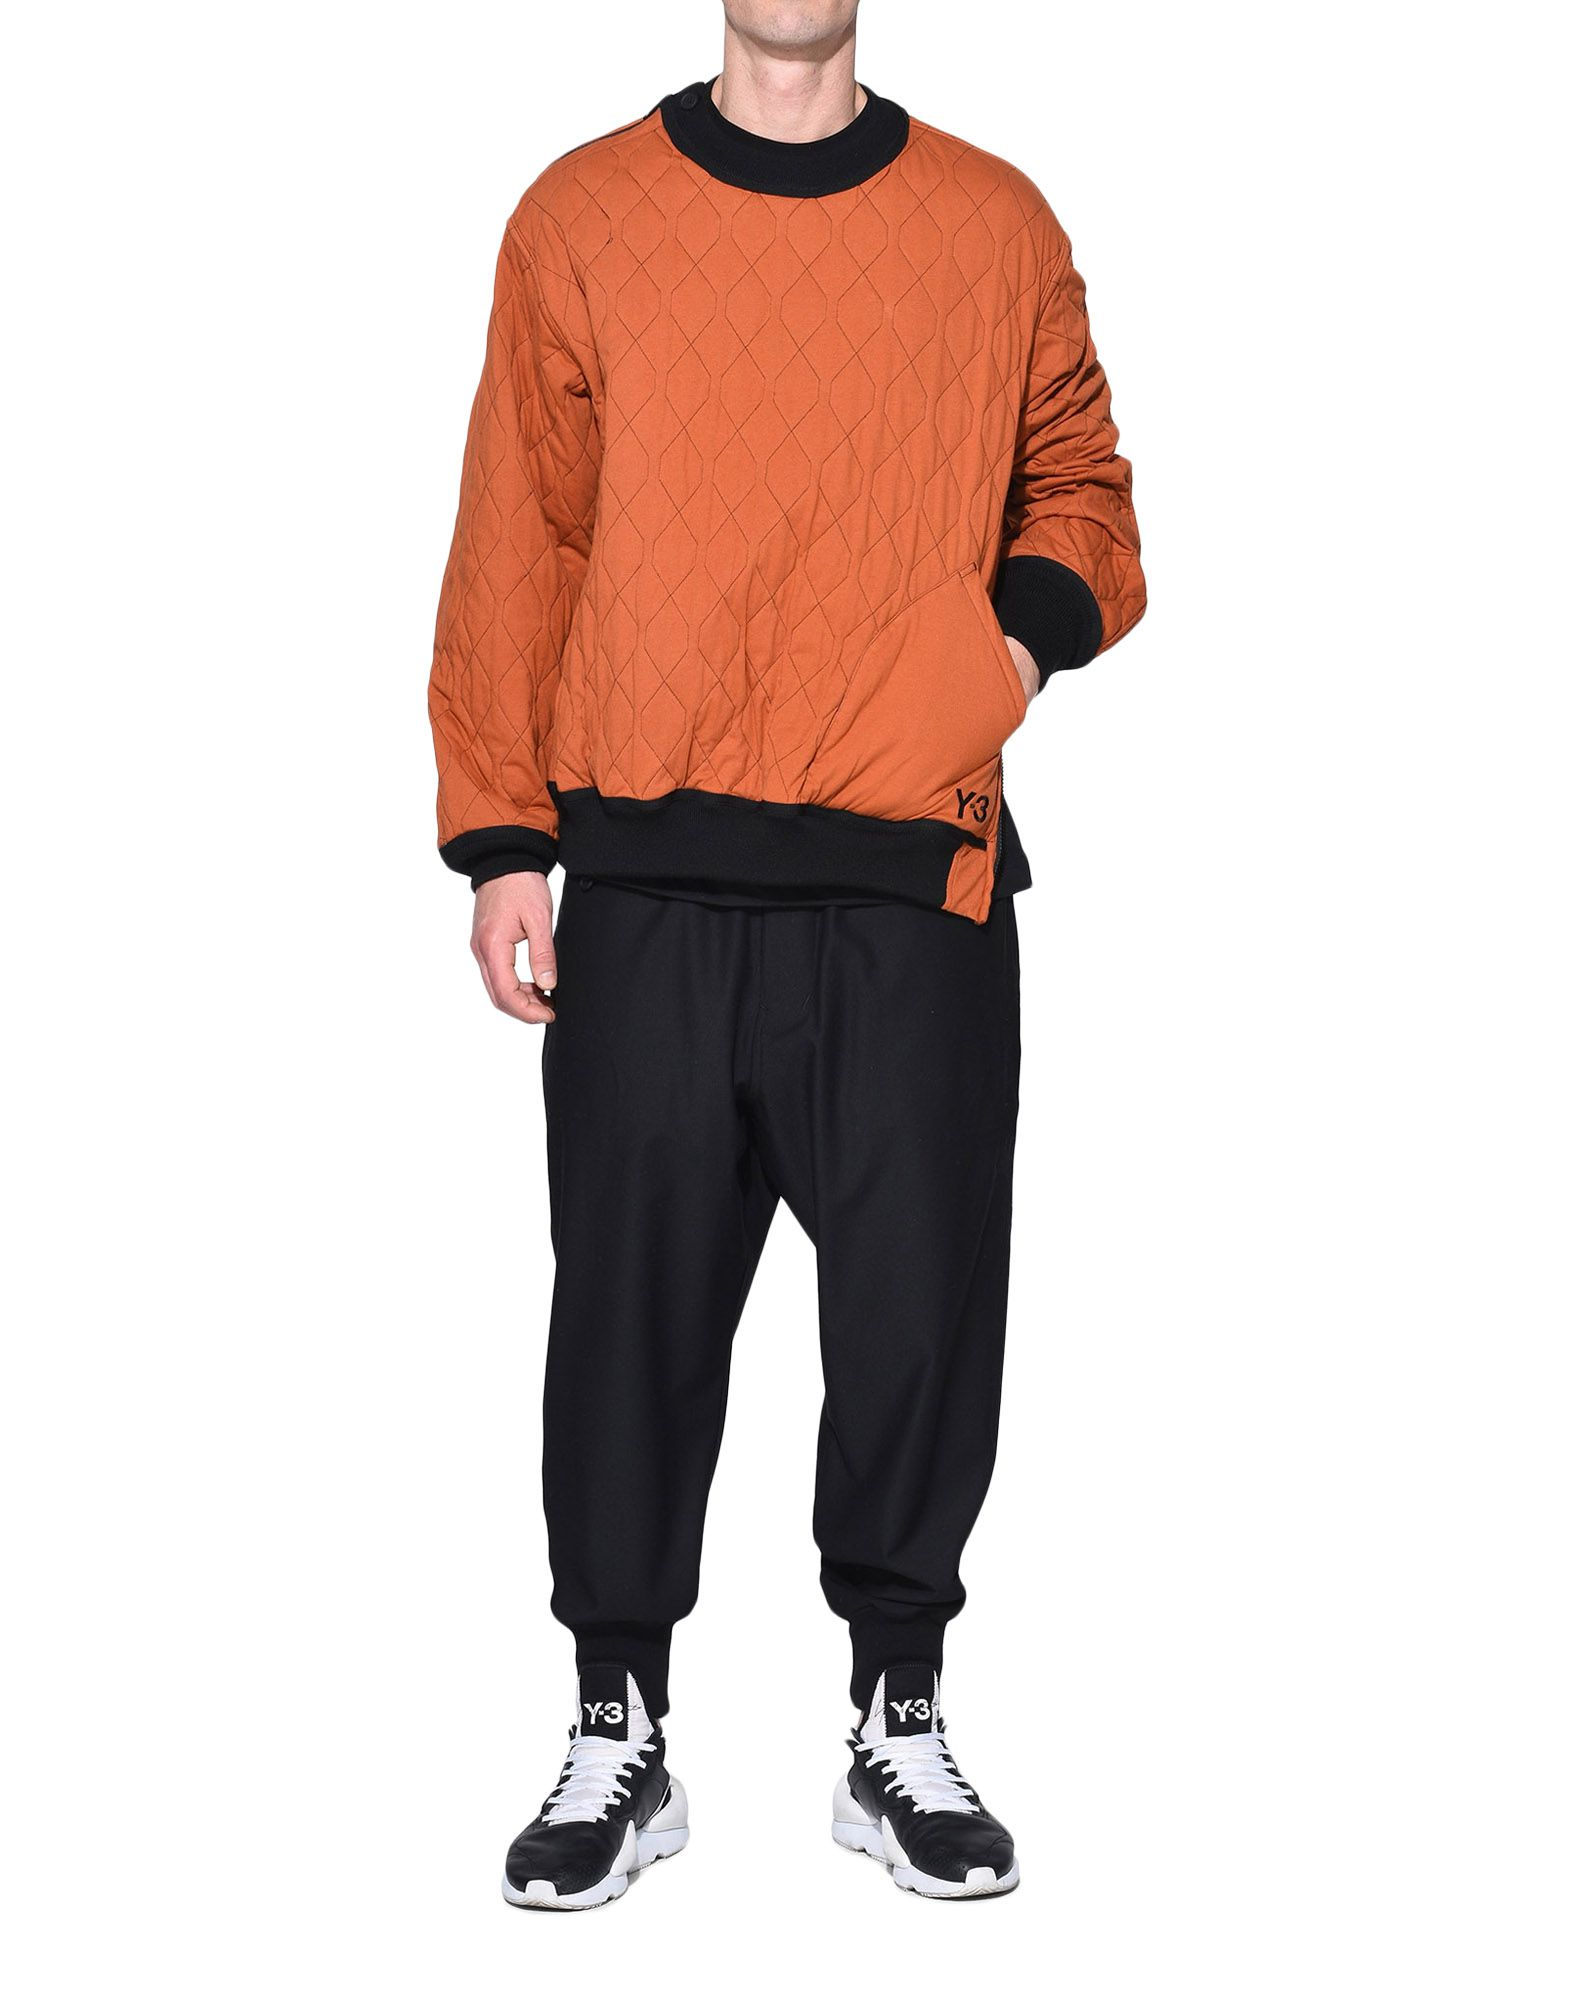 Y-3 Y-3 AOP Quilted Sweater スウェット メンズ a